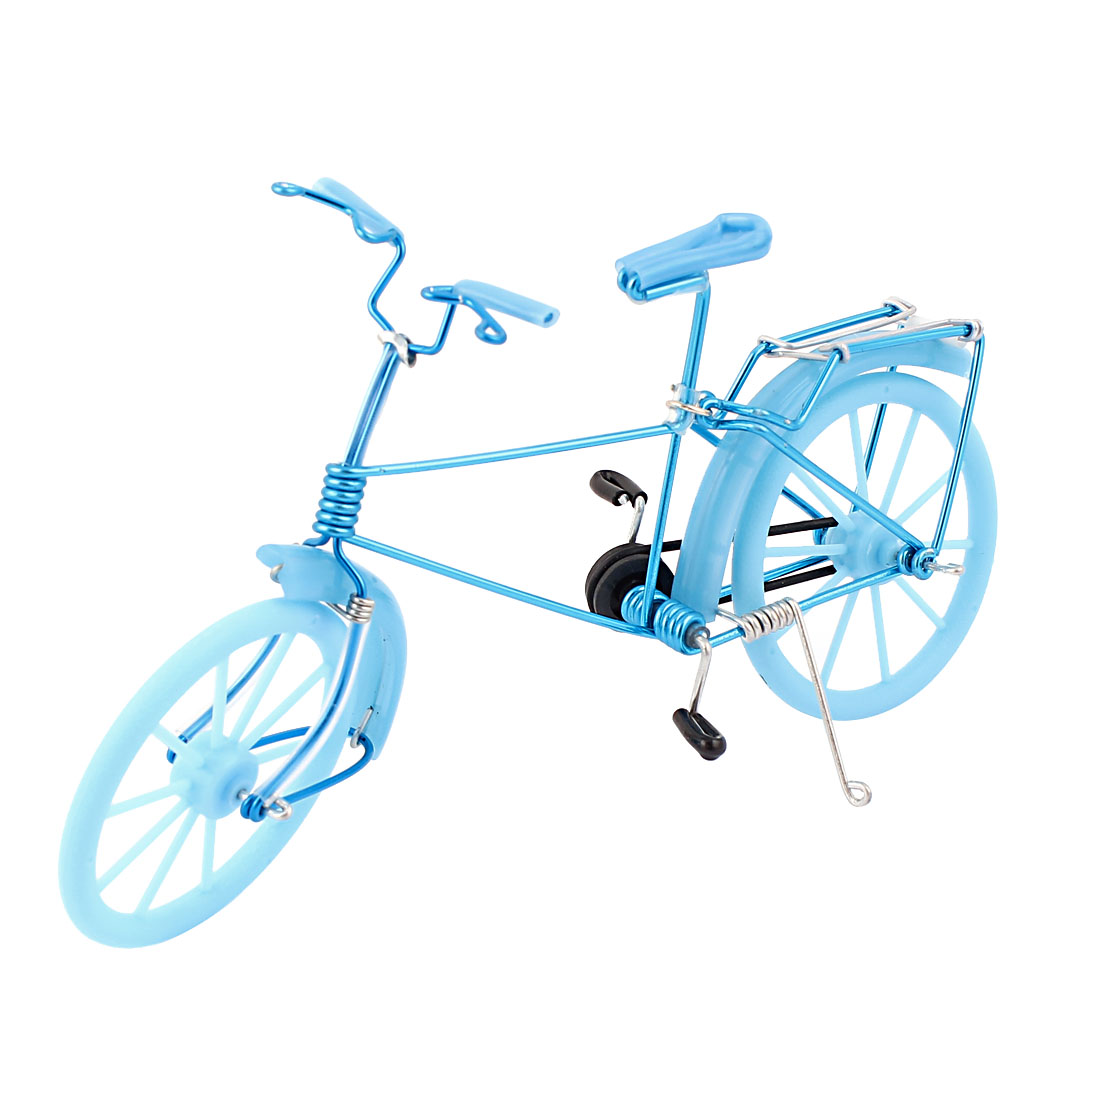 Wire Art Bicycle Model Bike Handmade Decoration Toy Gift Blue